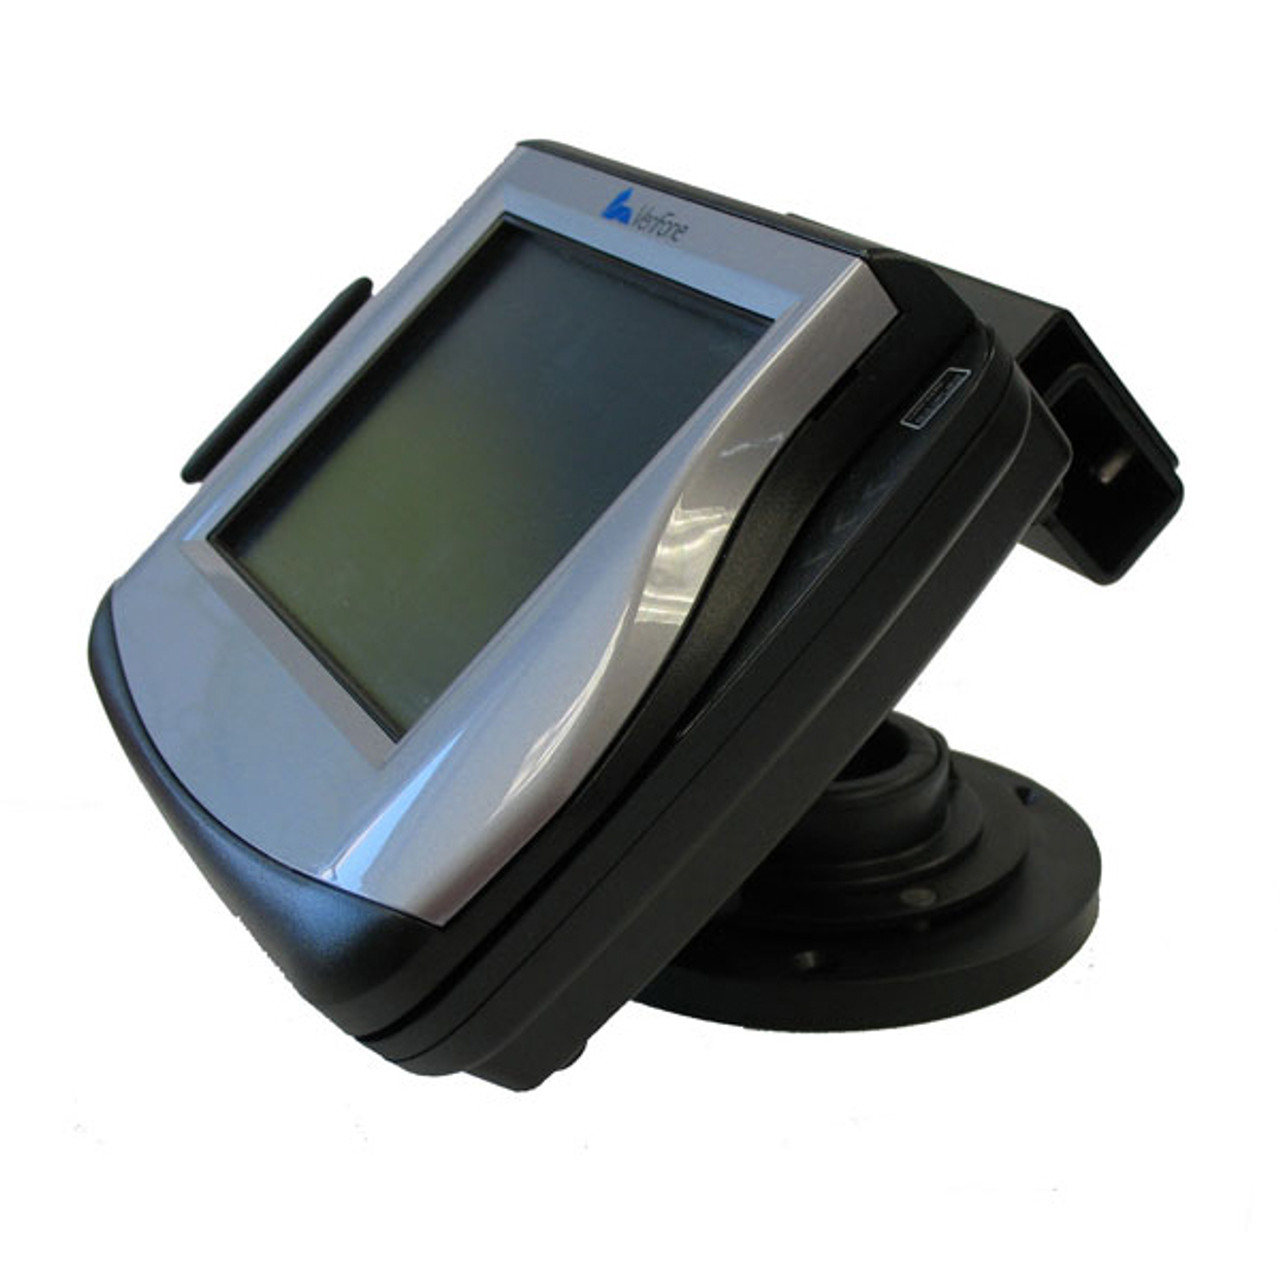 Swivel Stands Credit Card Stand Locking Low Profile VeriFone MX880